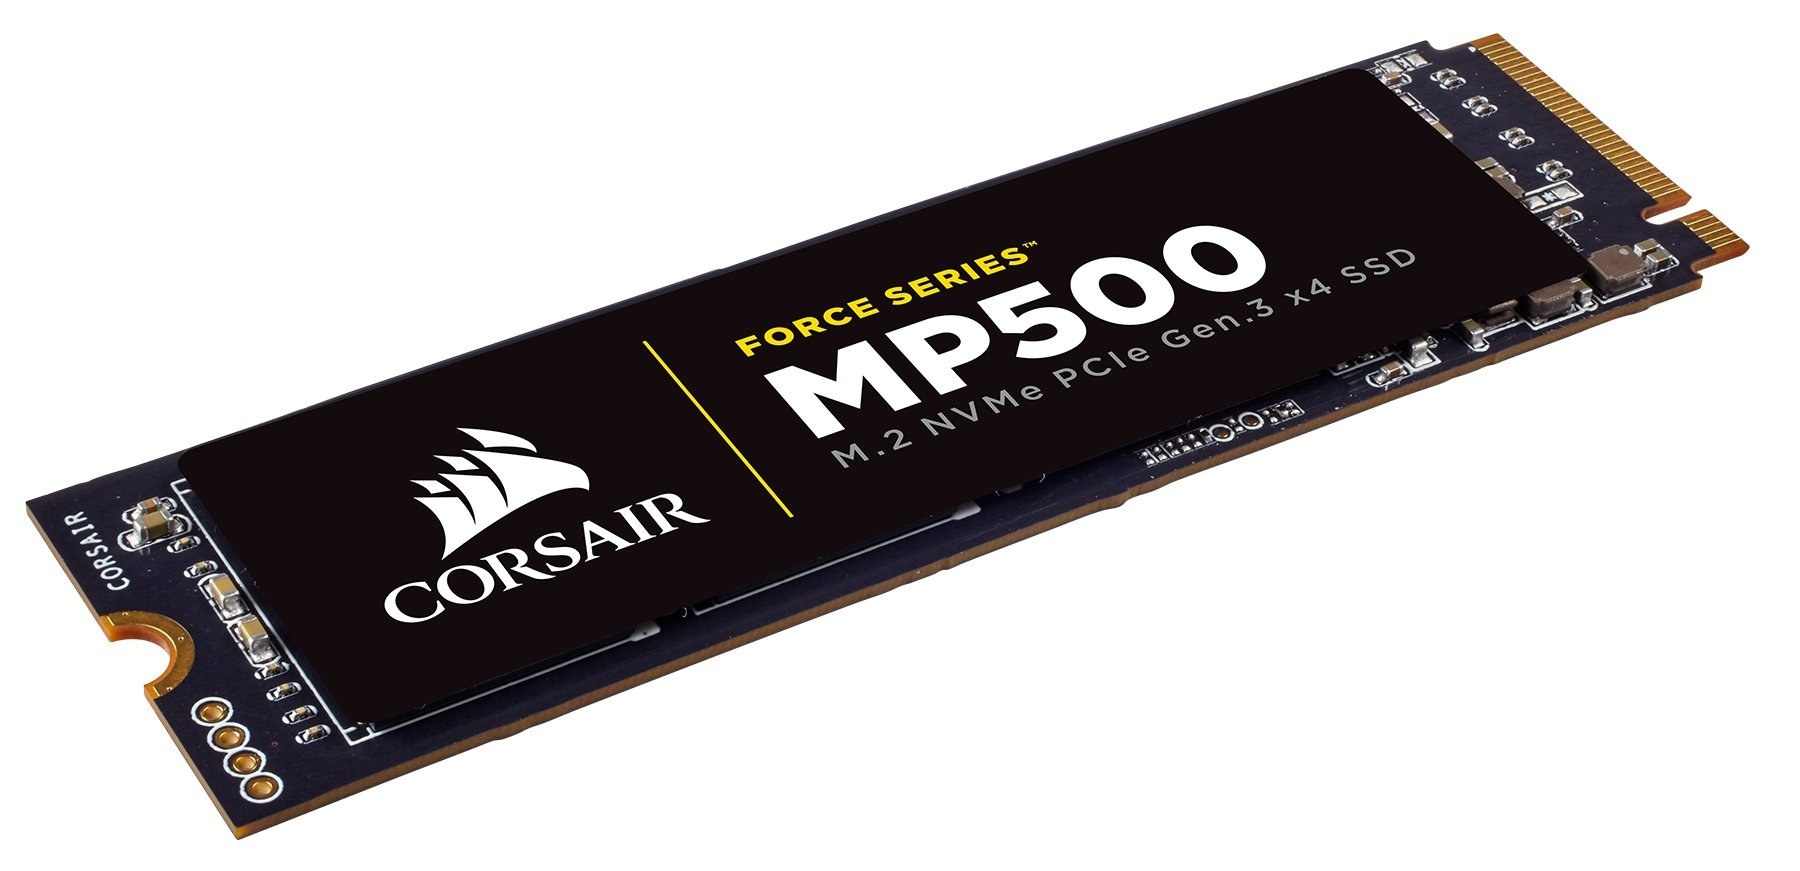 M.2 2280 480gb Nvme Corsair Force Series Mp500 480gb Nvme Pc